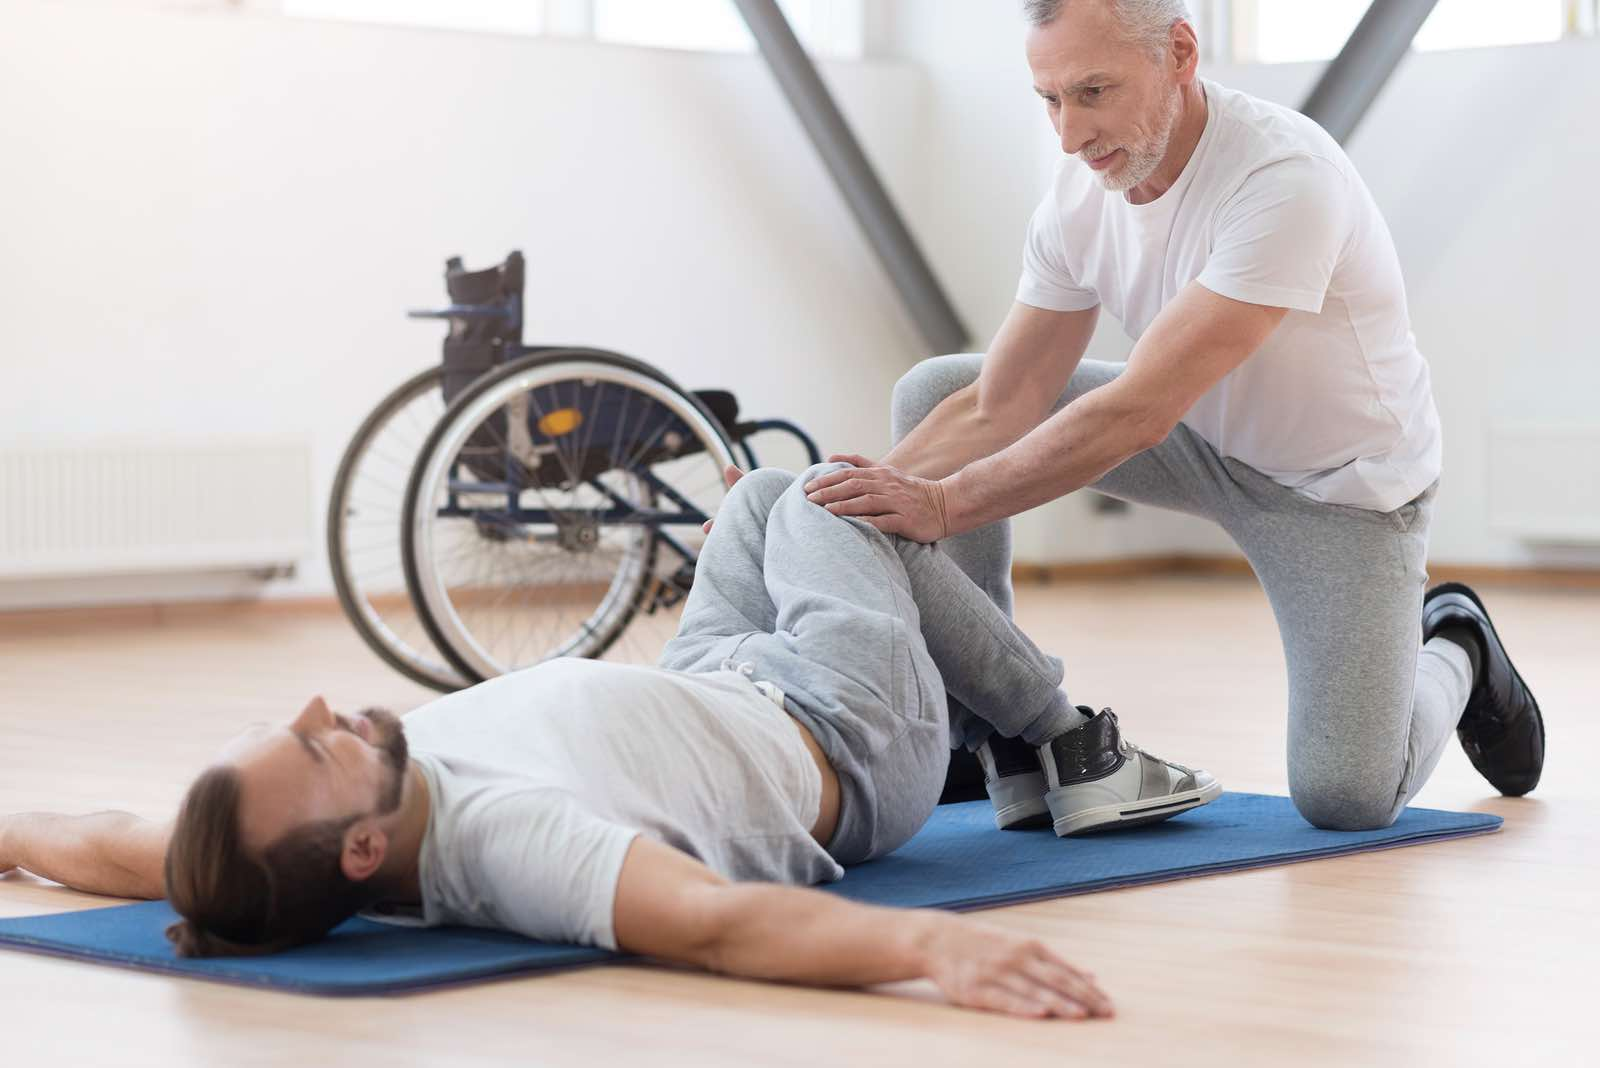 Spinal Cord Injury Assessment - Review the key components of SCI examination